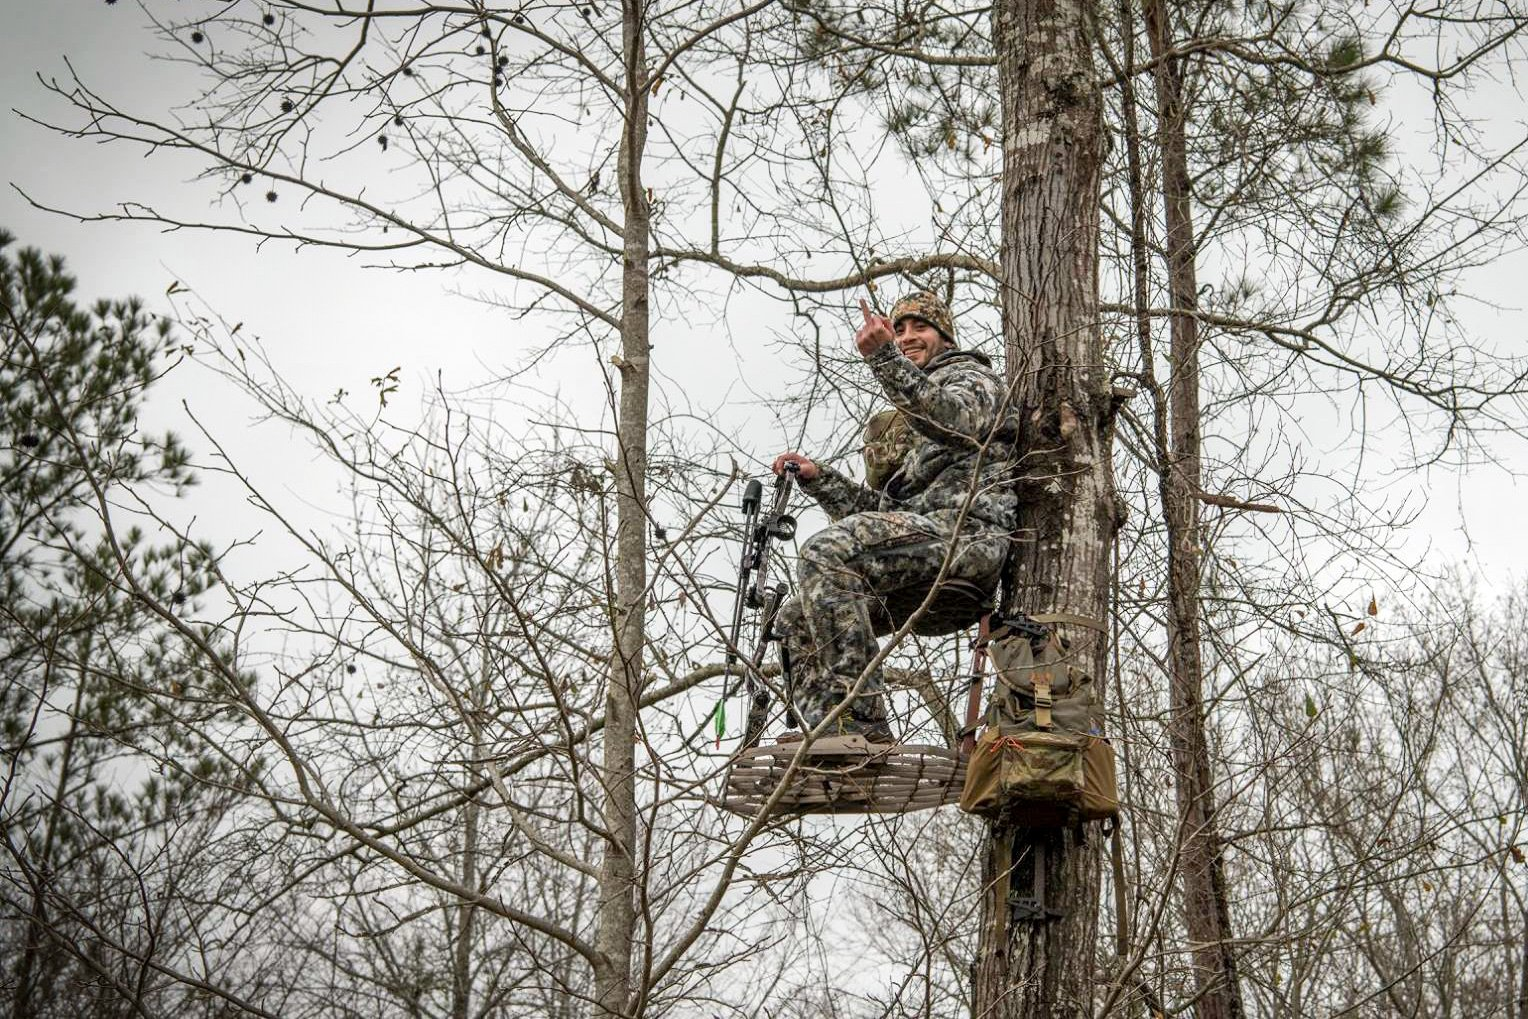 Frank tree stand